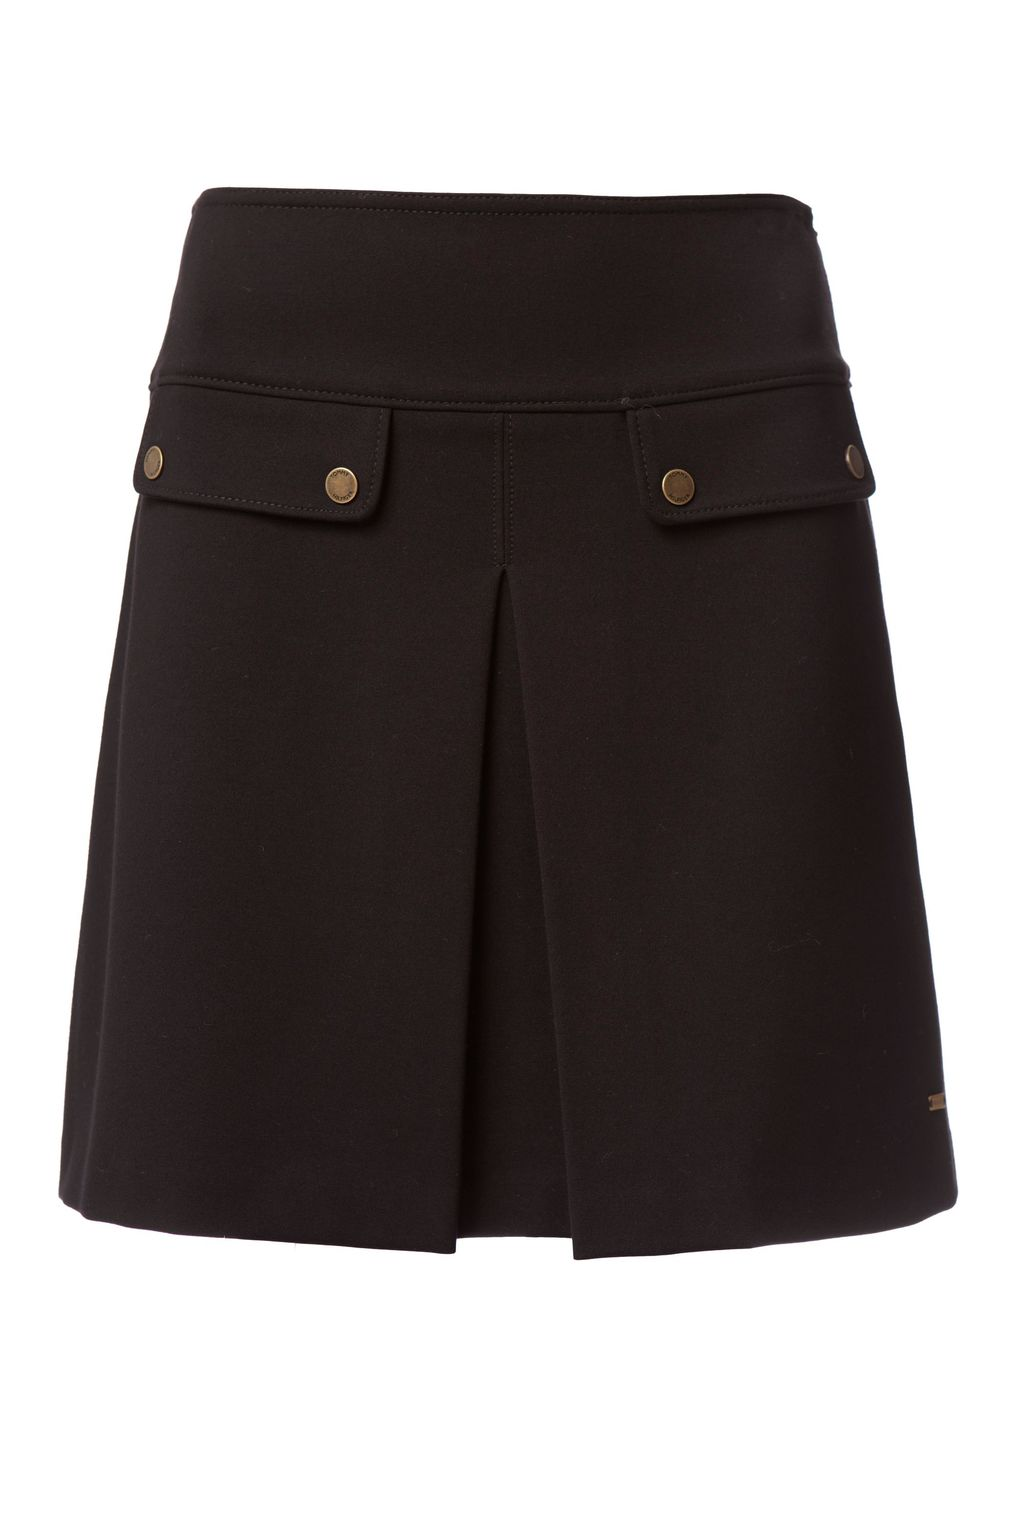 Imogen Skirt, Black - length: mid thigh; pattern: plain; style: straight; waist: mid/regular rise; predominant colour: black; occasions: casual; fibres: viscose/rayon - stretch; fit: straight cut; pattern type: fabric; texture group: other - light to midweight; wardrobe: basic; season: a/w 2016